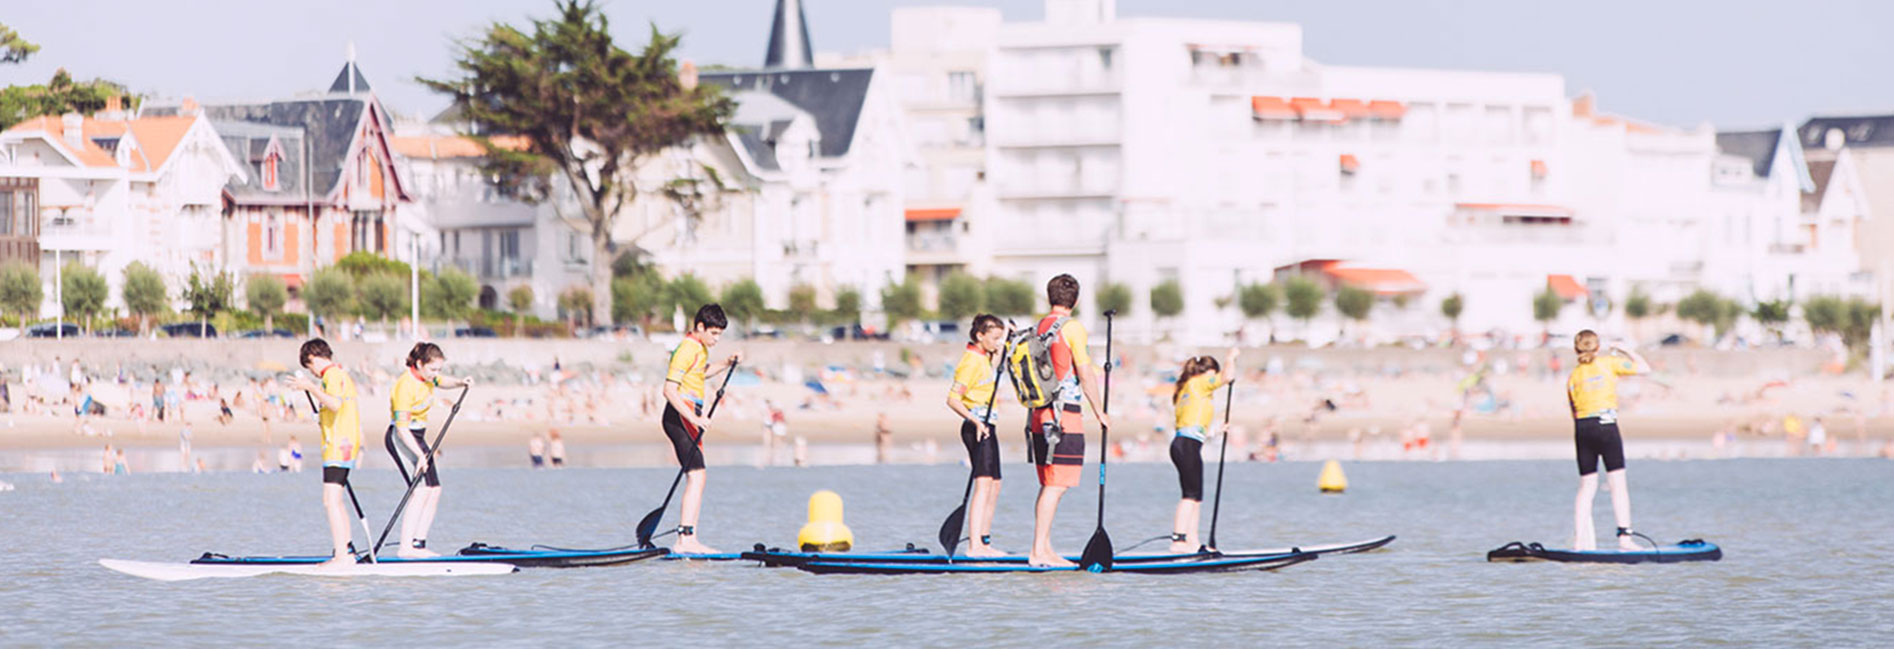 ecole stand-up paddle tribuocéan